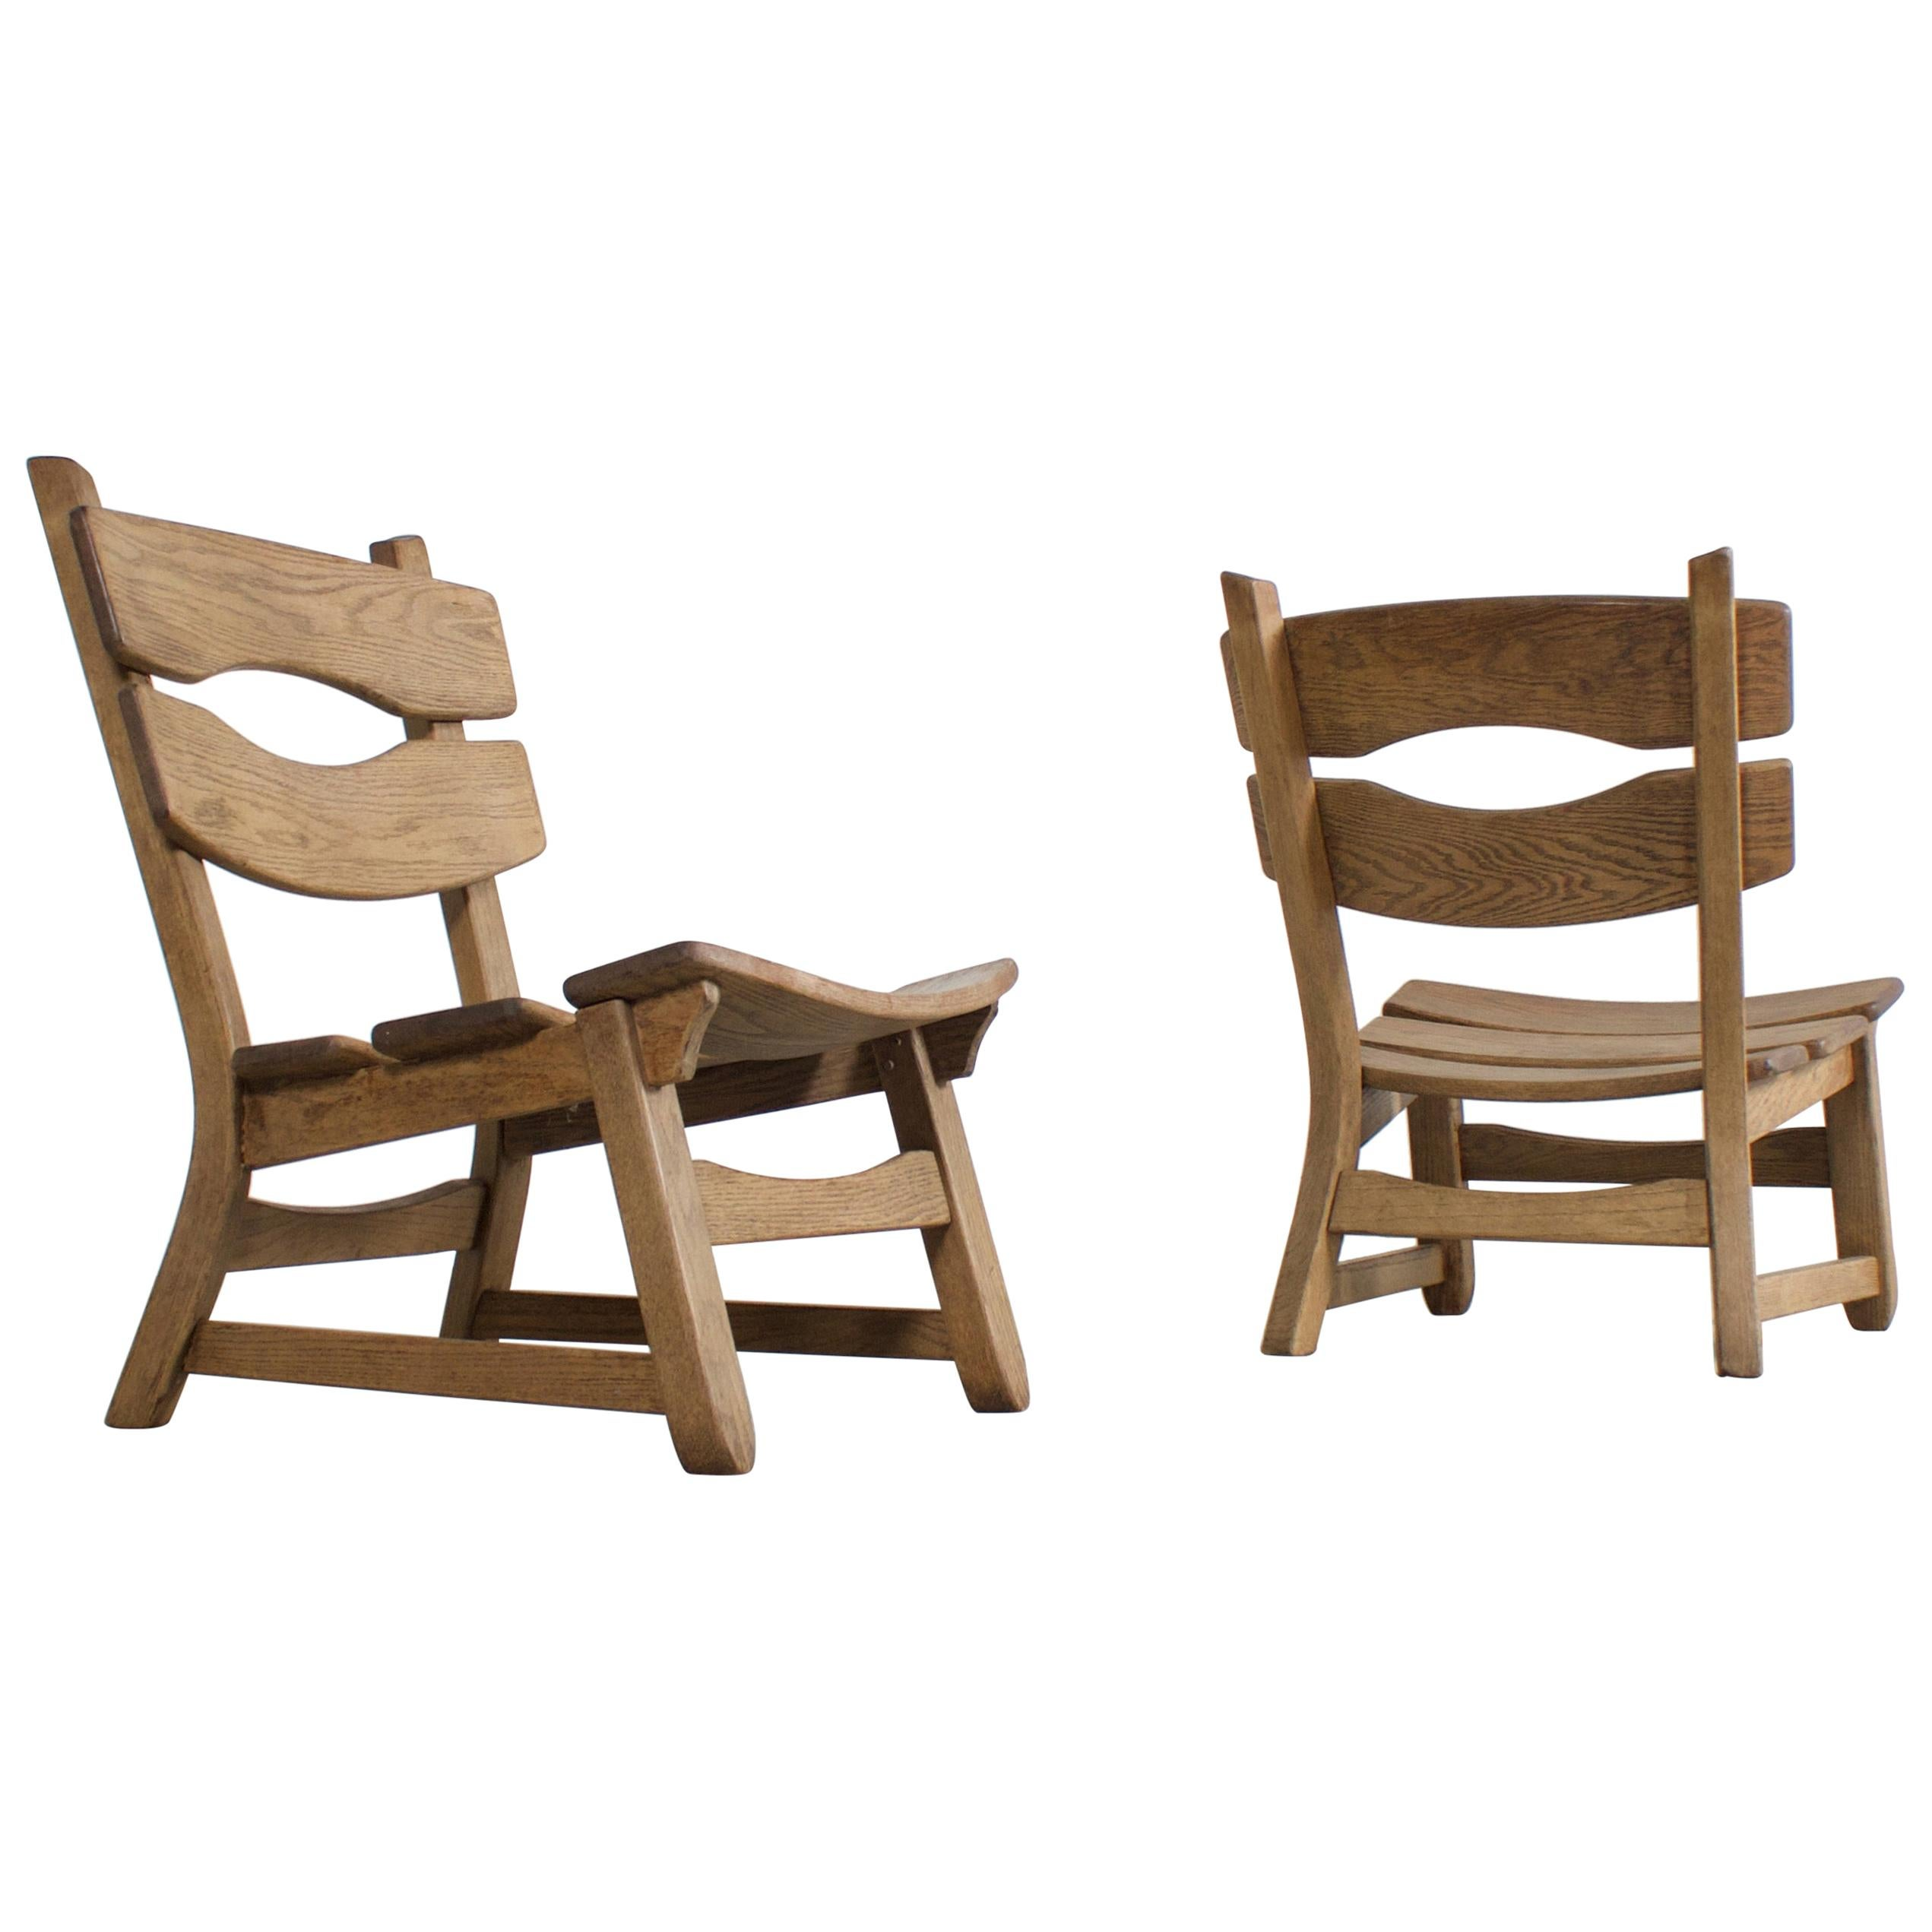 Pair of Solid Oak Brutalist Lounge Chairs, France, 1960s